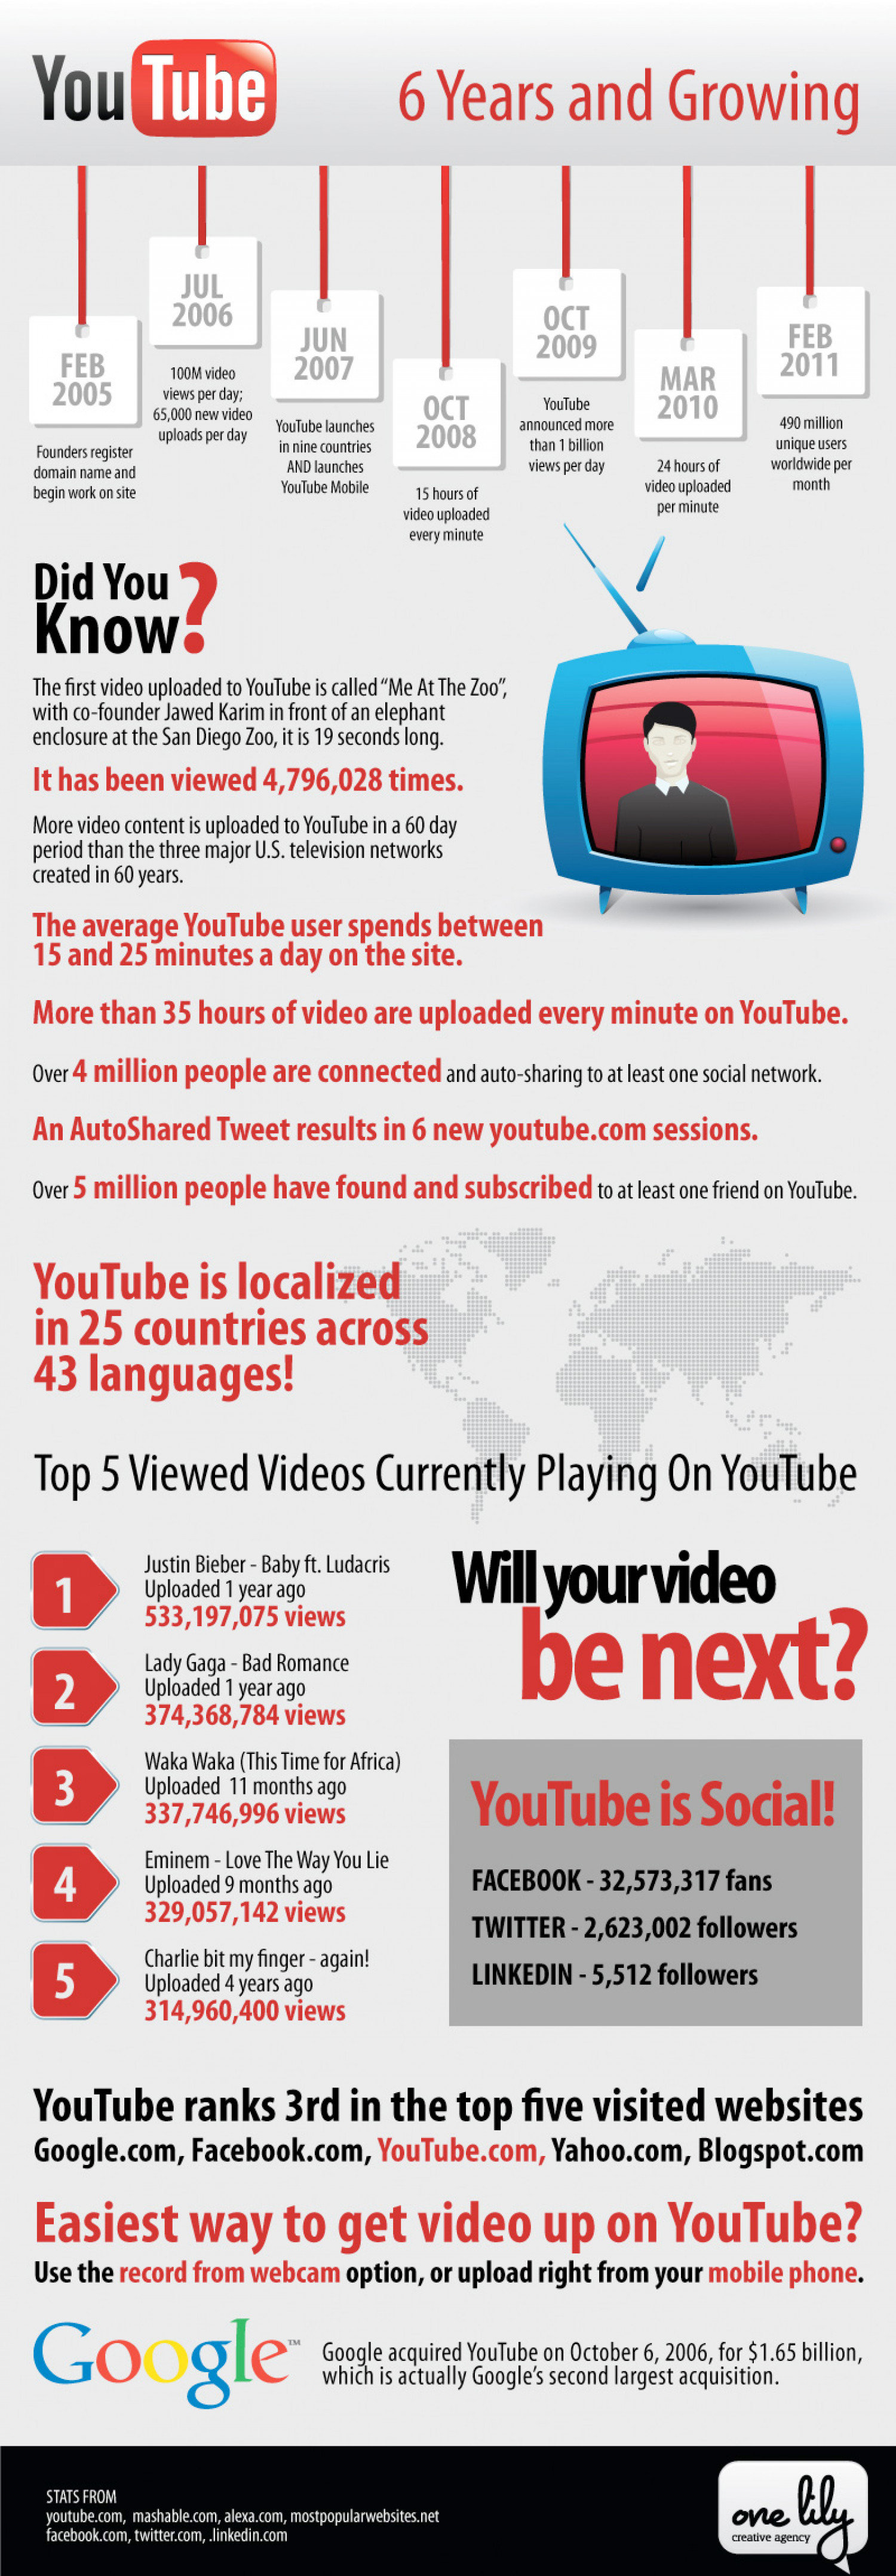 YouTube: 6 Years and Growing Infographic